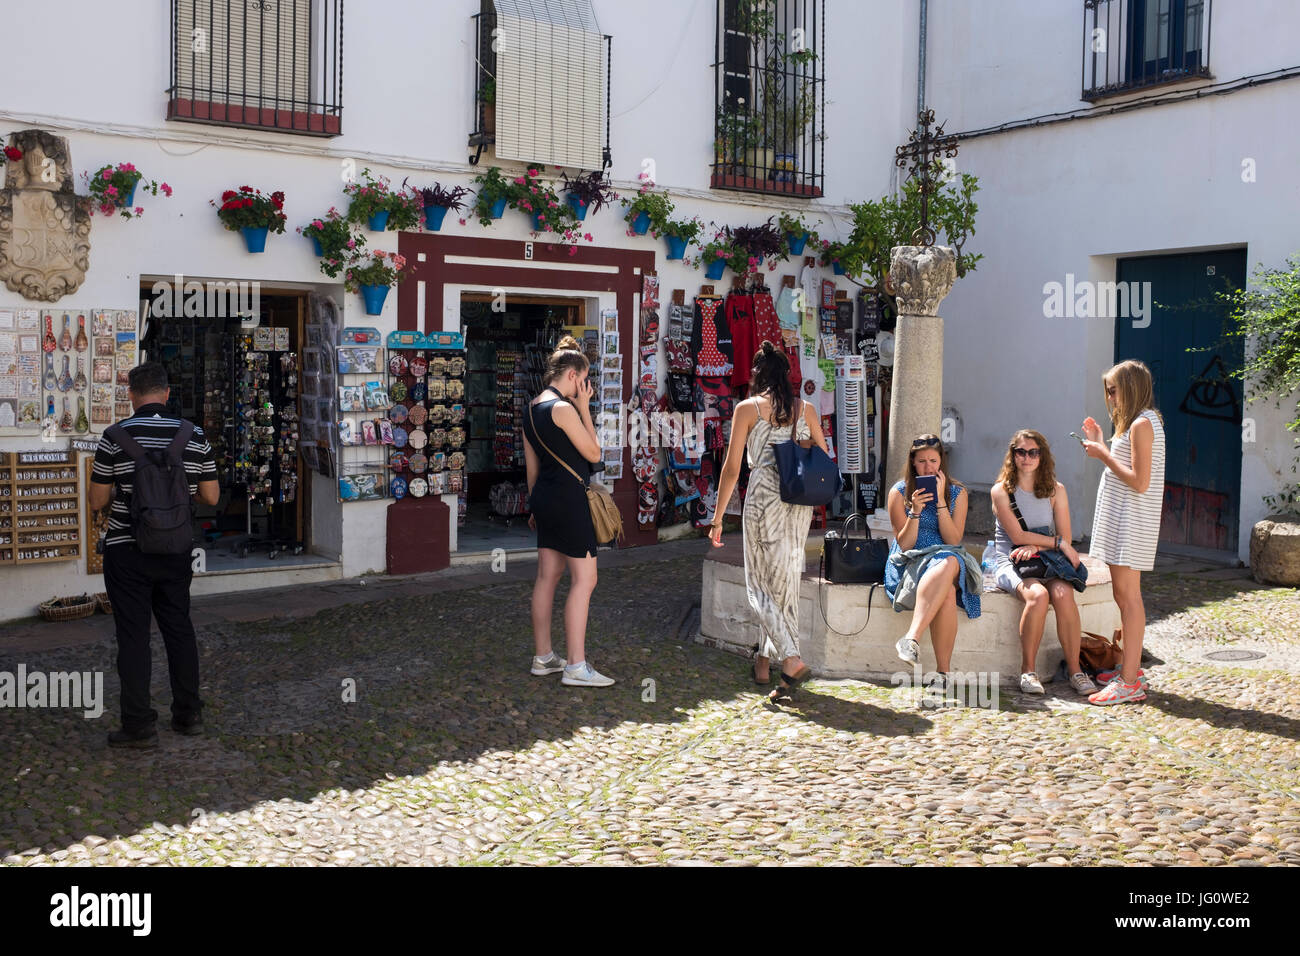 Tourists in the small square in the Calleja de las Flores, Cordoba, Spain. Stock Photo